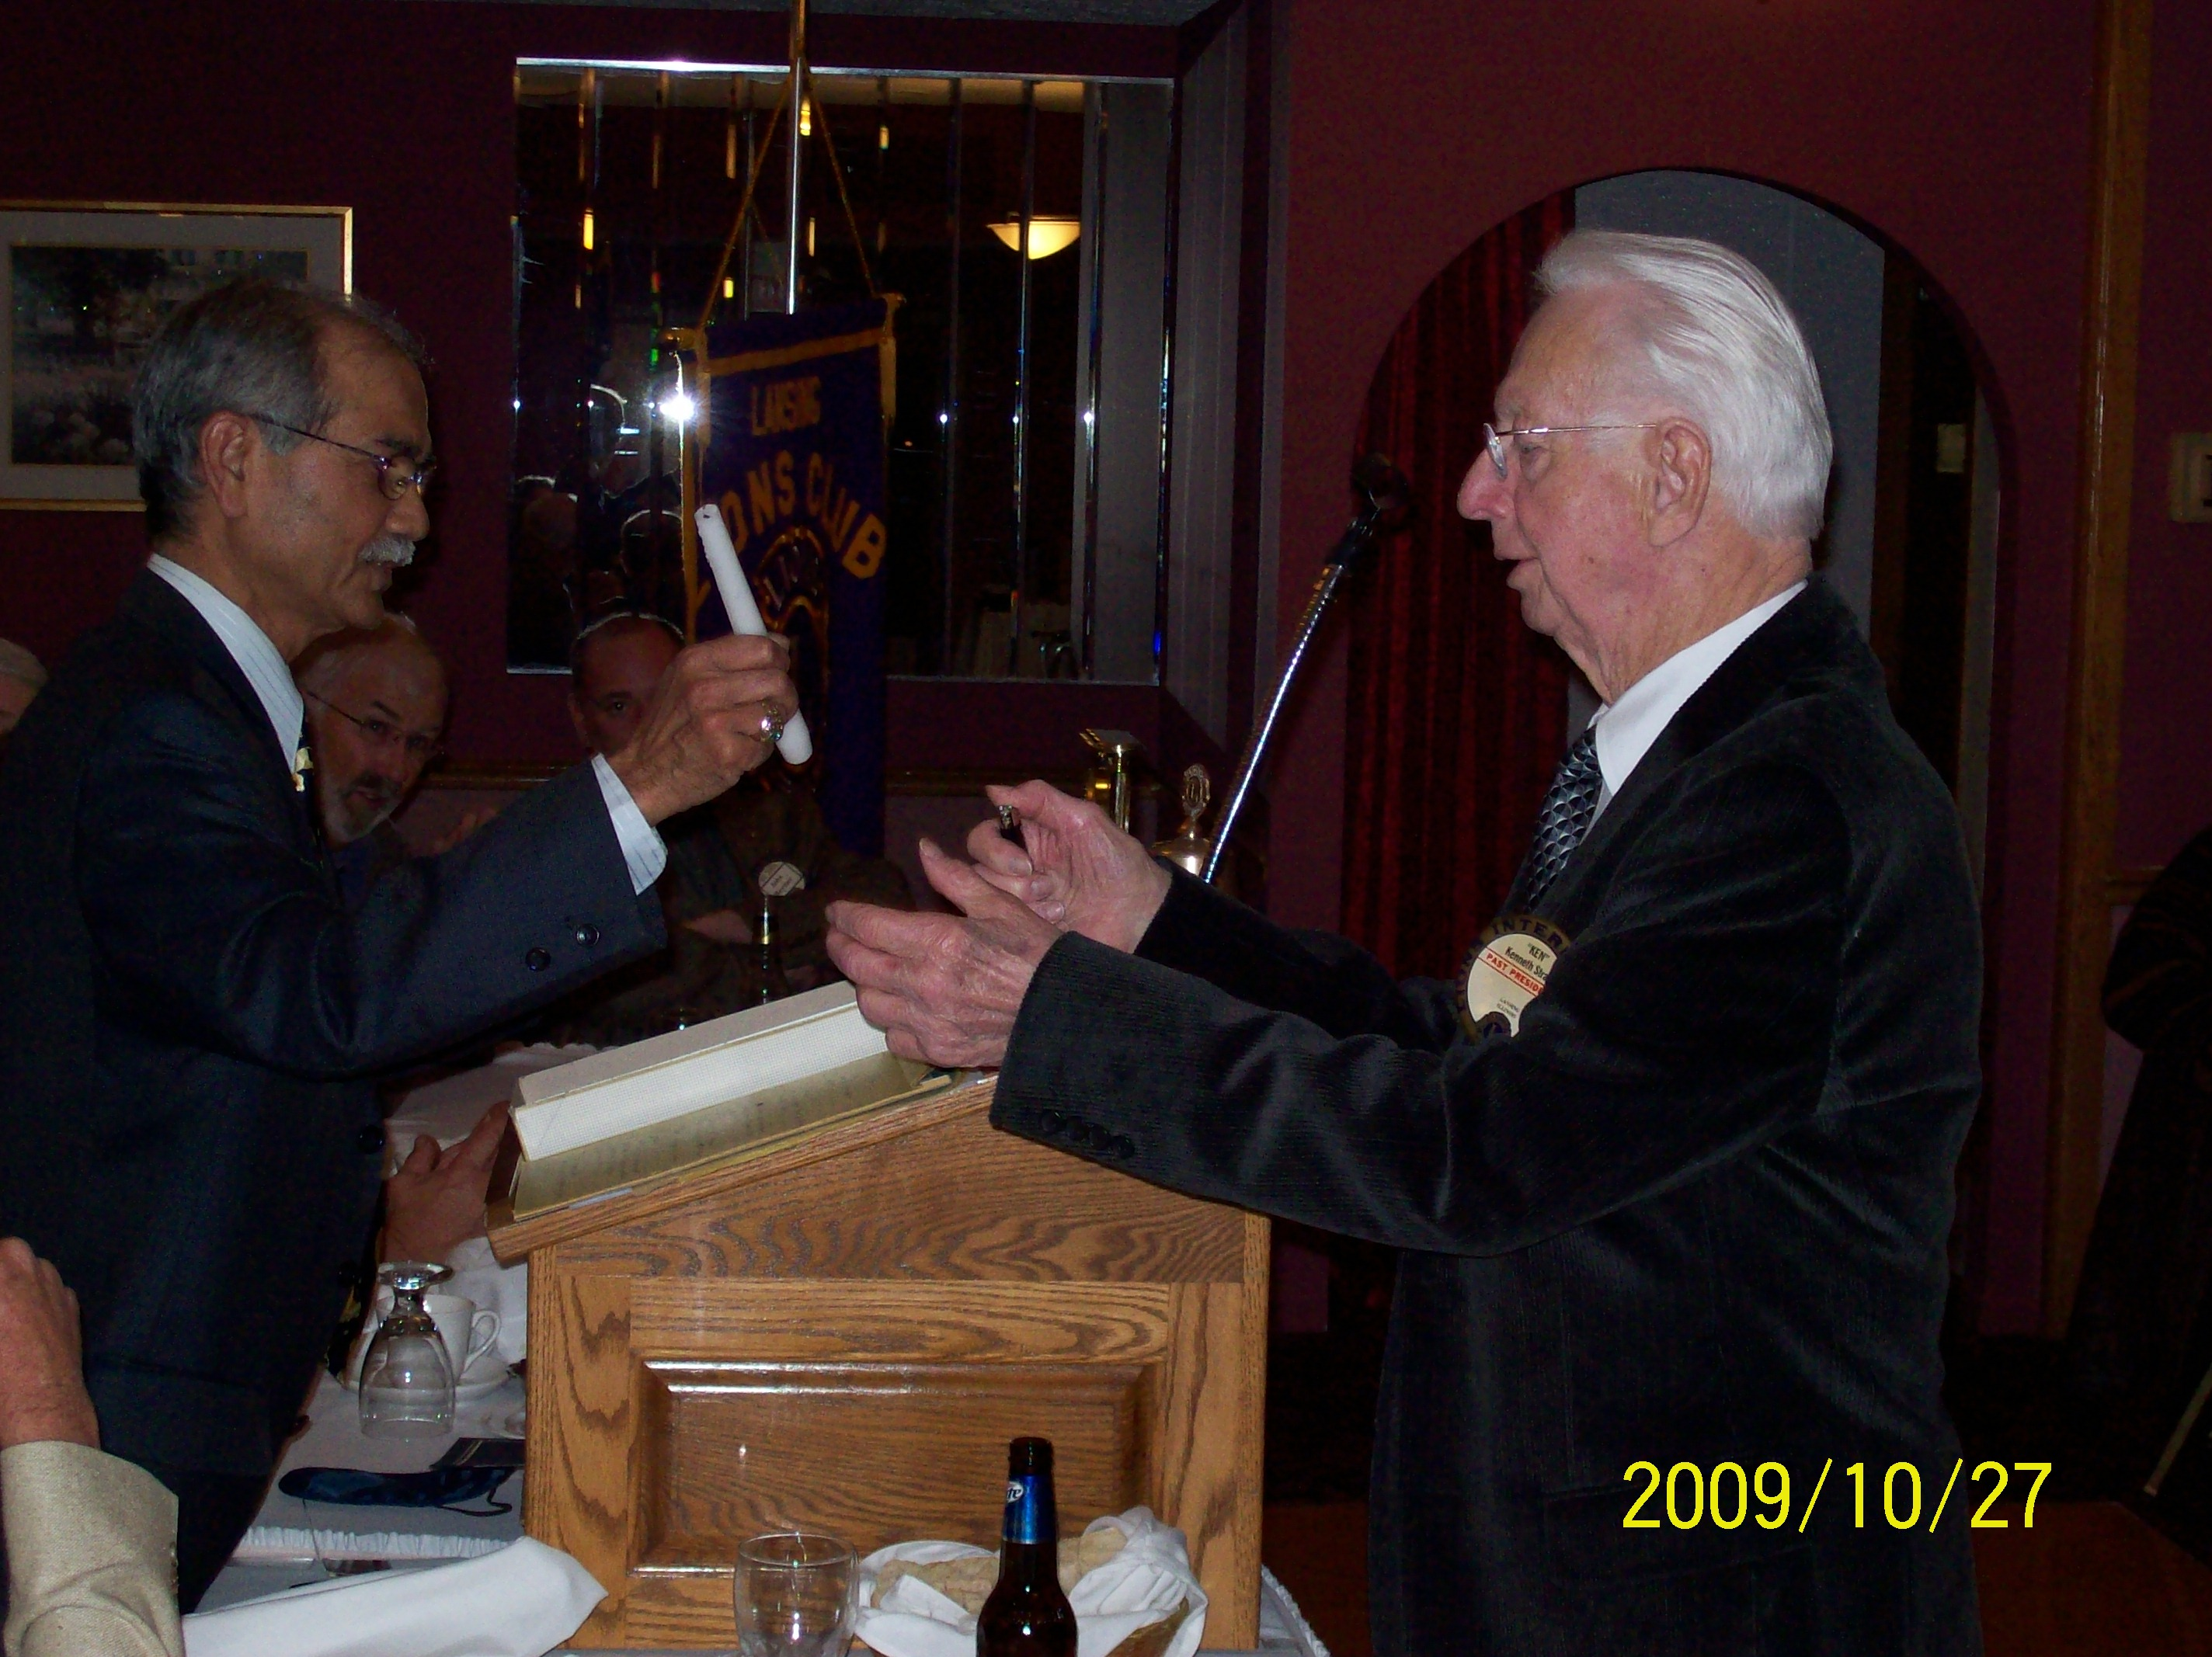 LION PDG KEN STRAKA RECIEVING HIS PRESIDENT'S ACHEIVEMENT AWARD